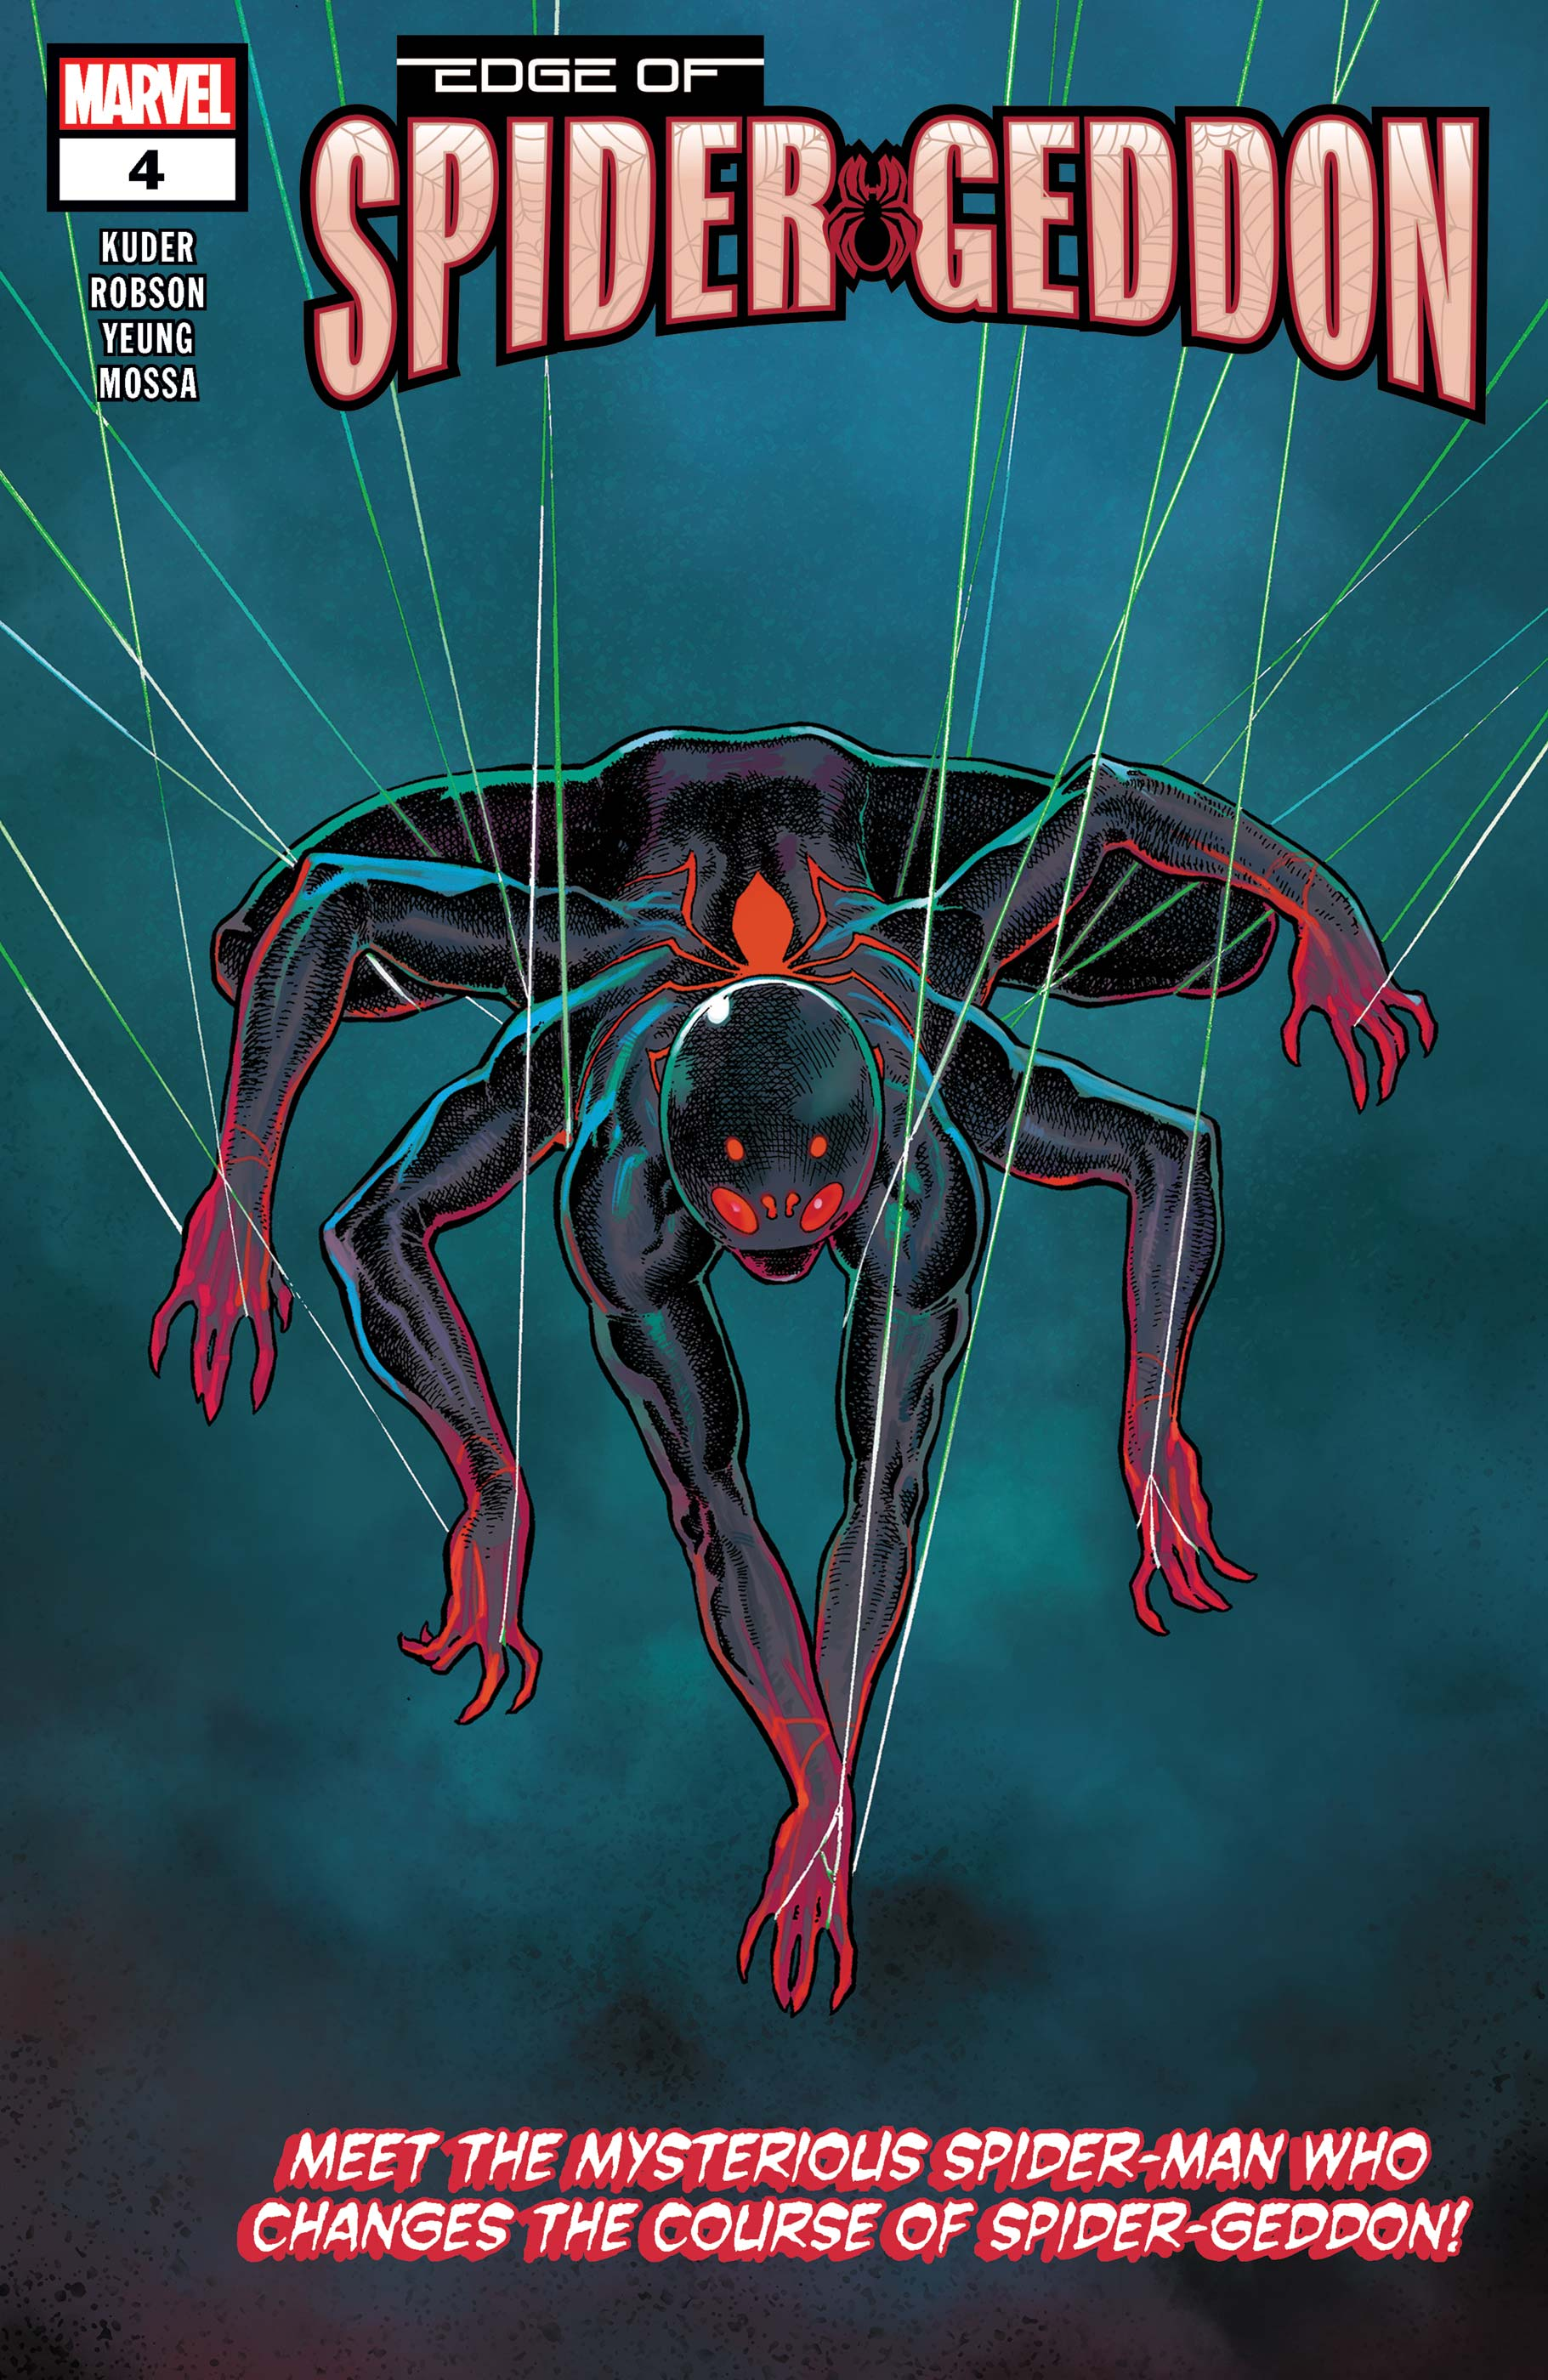 Edge of Spider-Geddon (2018) #4